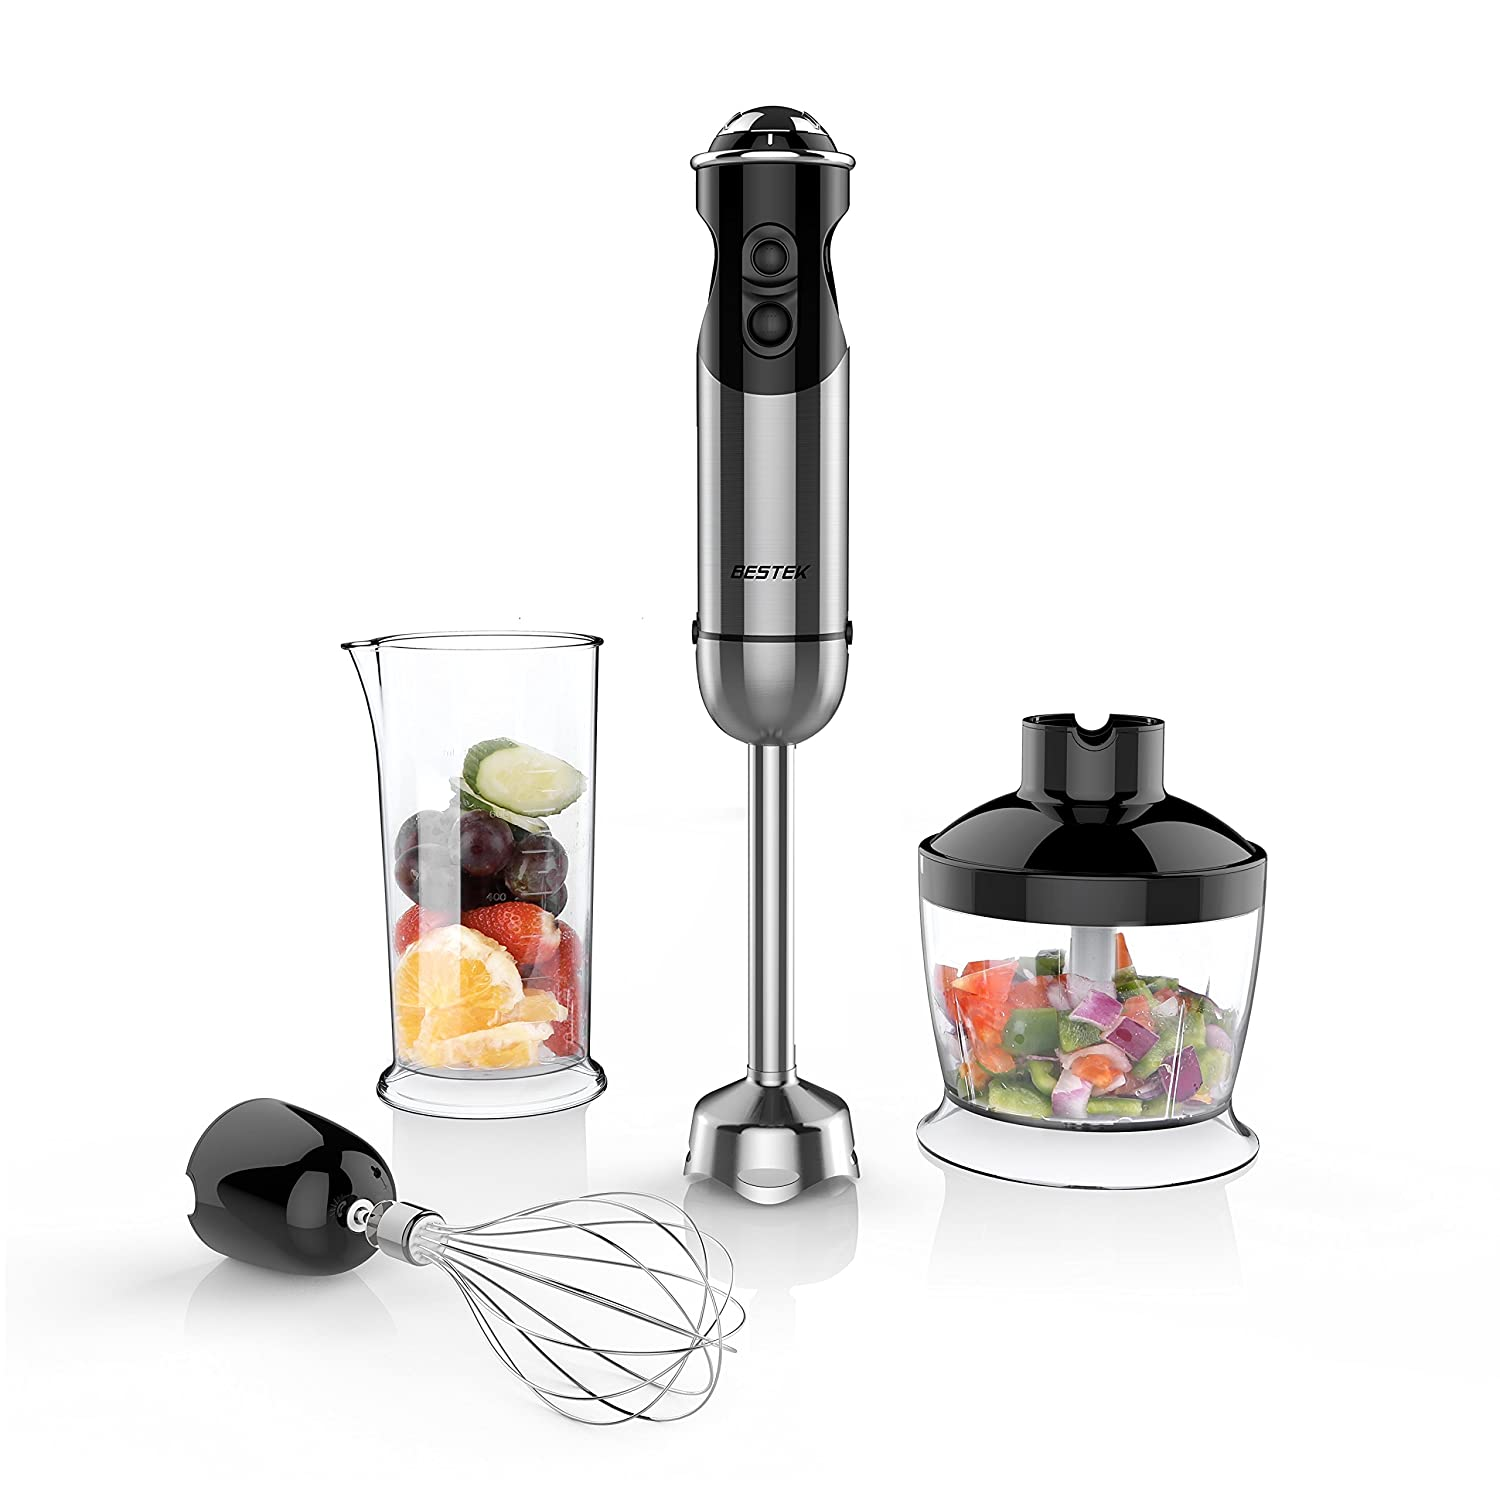 BESTEK Imersion Blender 350W 5 Speed 4-in-1 Hand Blender Smart Stick with Food Processor, Whisk, Beaker and 2 Stainless Steel Blades for Smoothies Baby Food Yogurt Sauces Soups